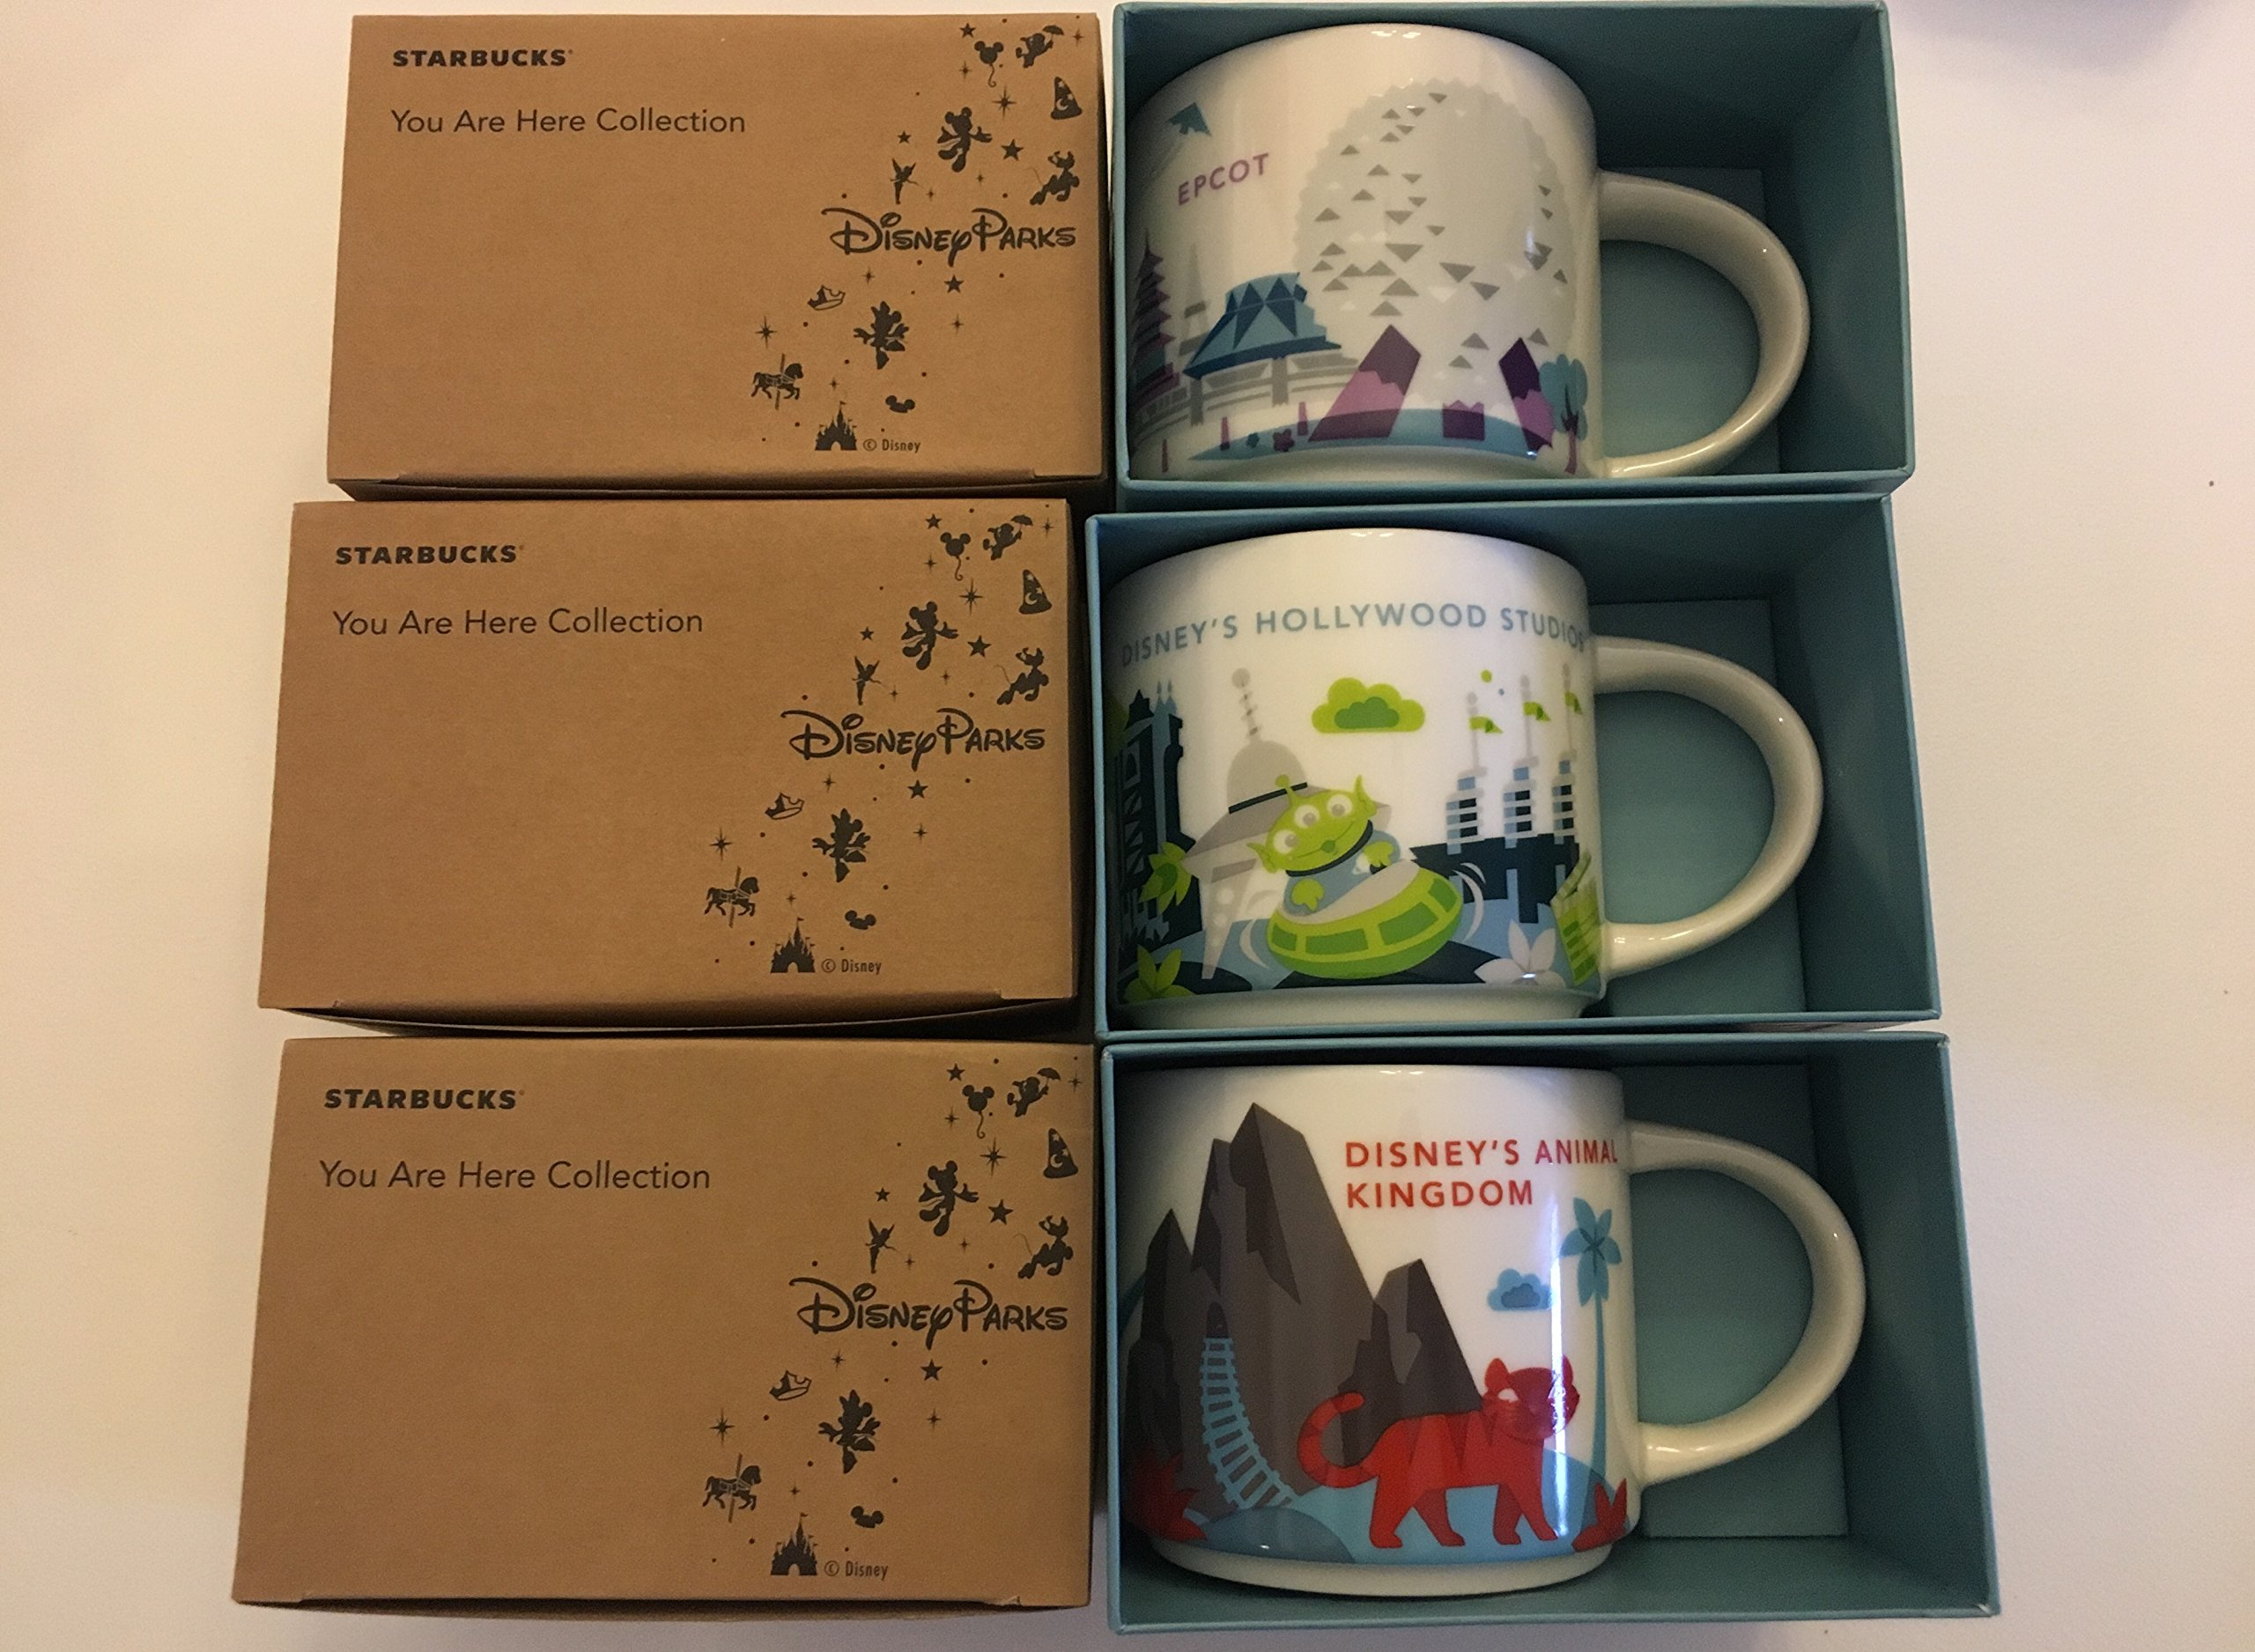 3 Mug Set: Disney's Hollywood Studios +Animal Kingdom+ Epcot V2 You Are Here 14 Oz. Starbucks Mugs W/ Bonus Blank Starbucks Card